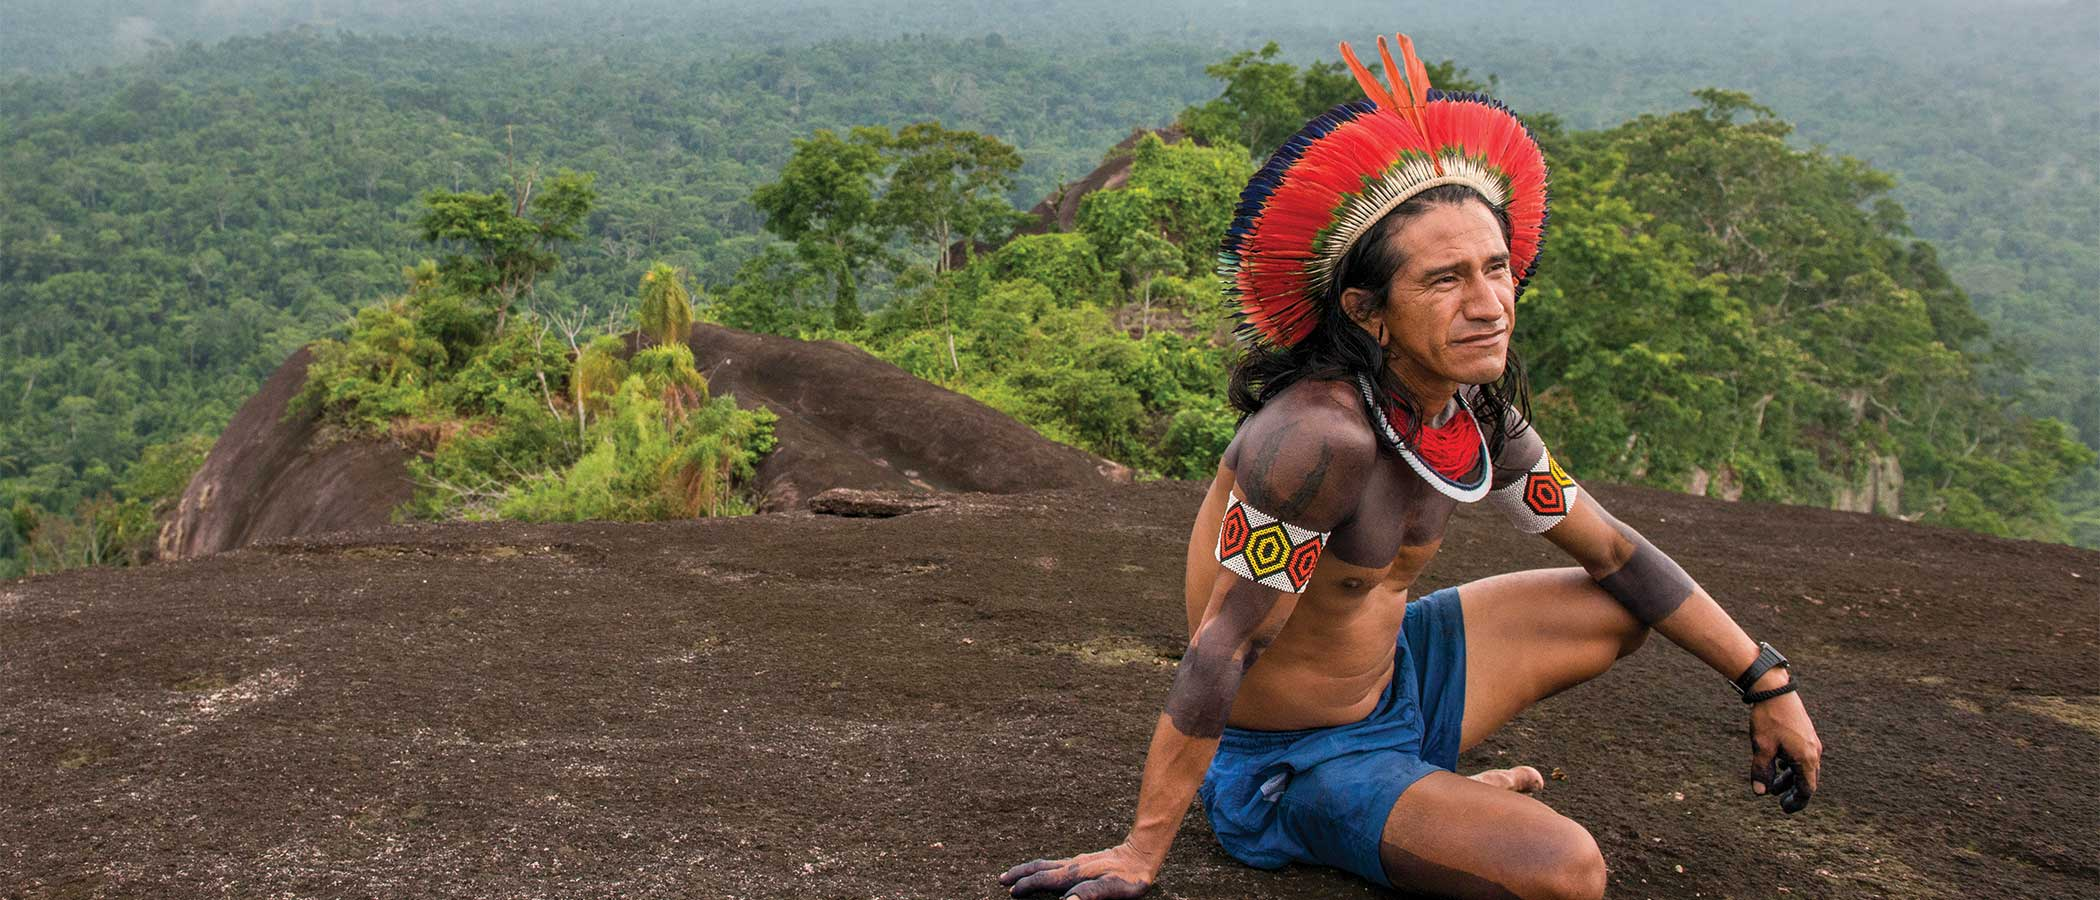 A Kayapo man seated on a mountain top overlooking forest in the Amazon.